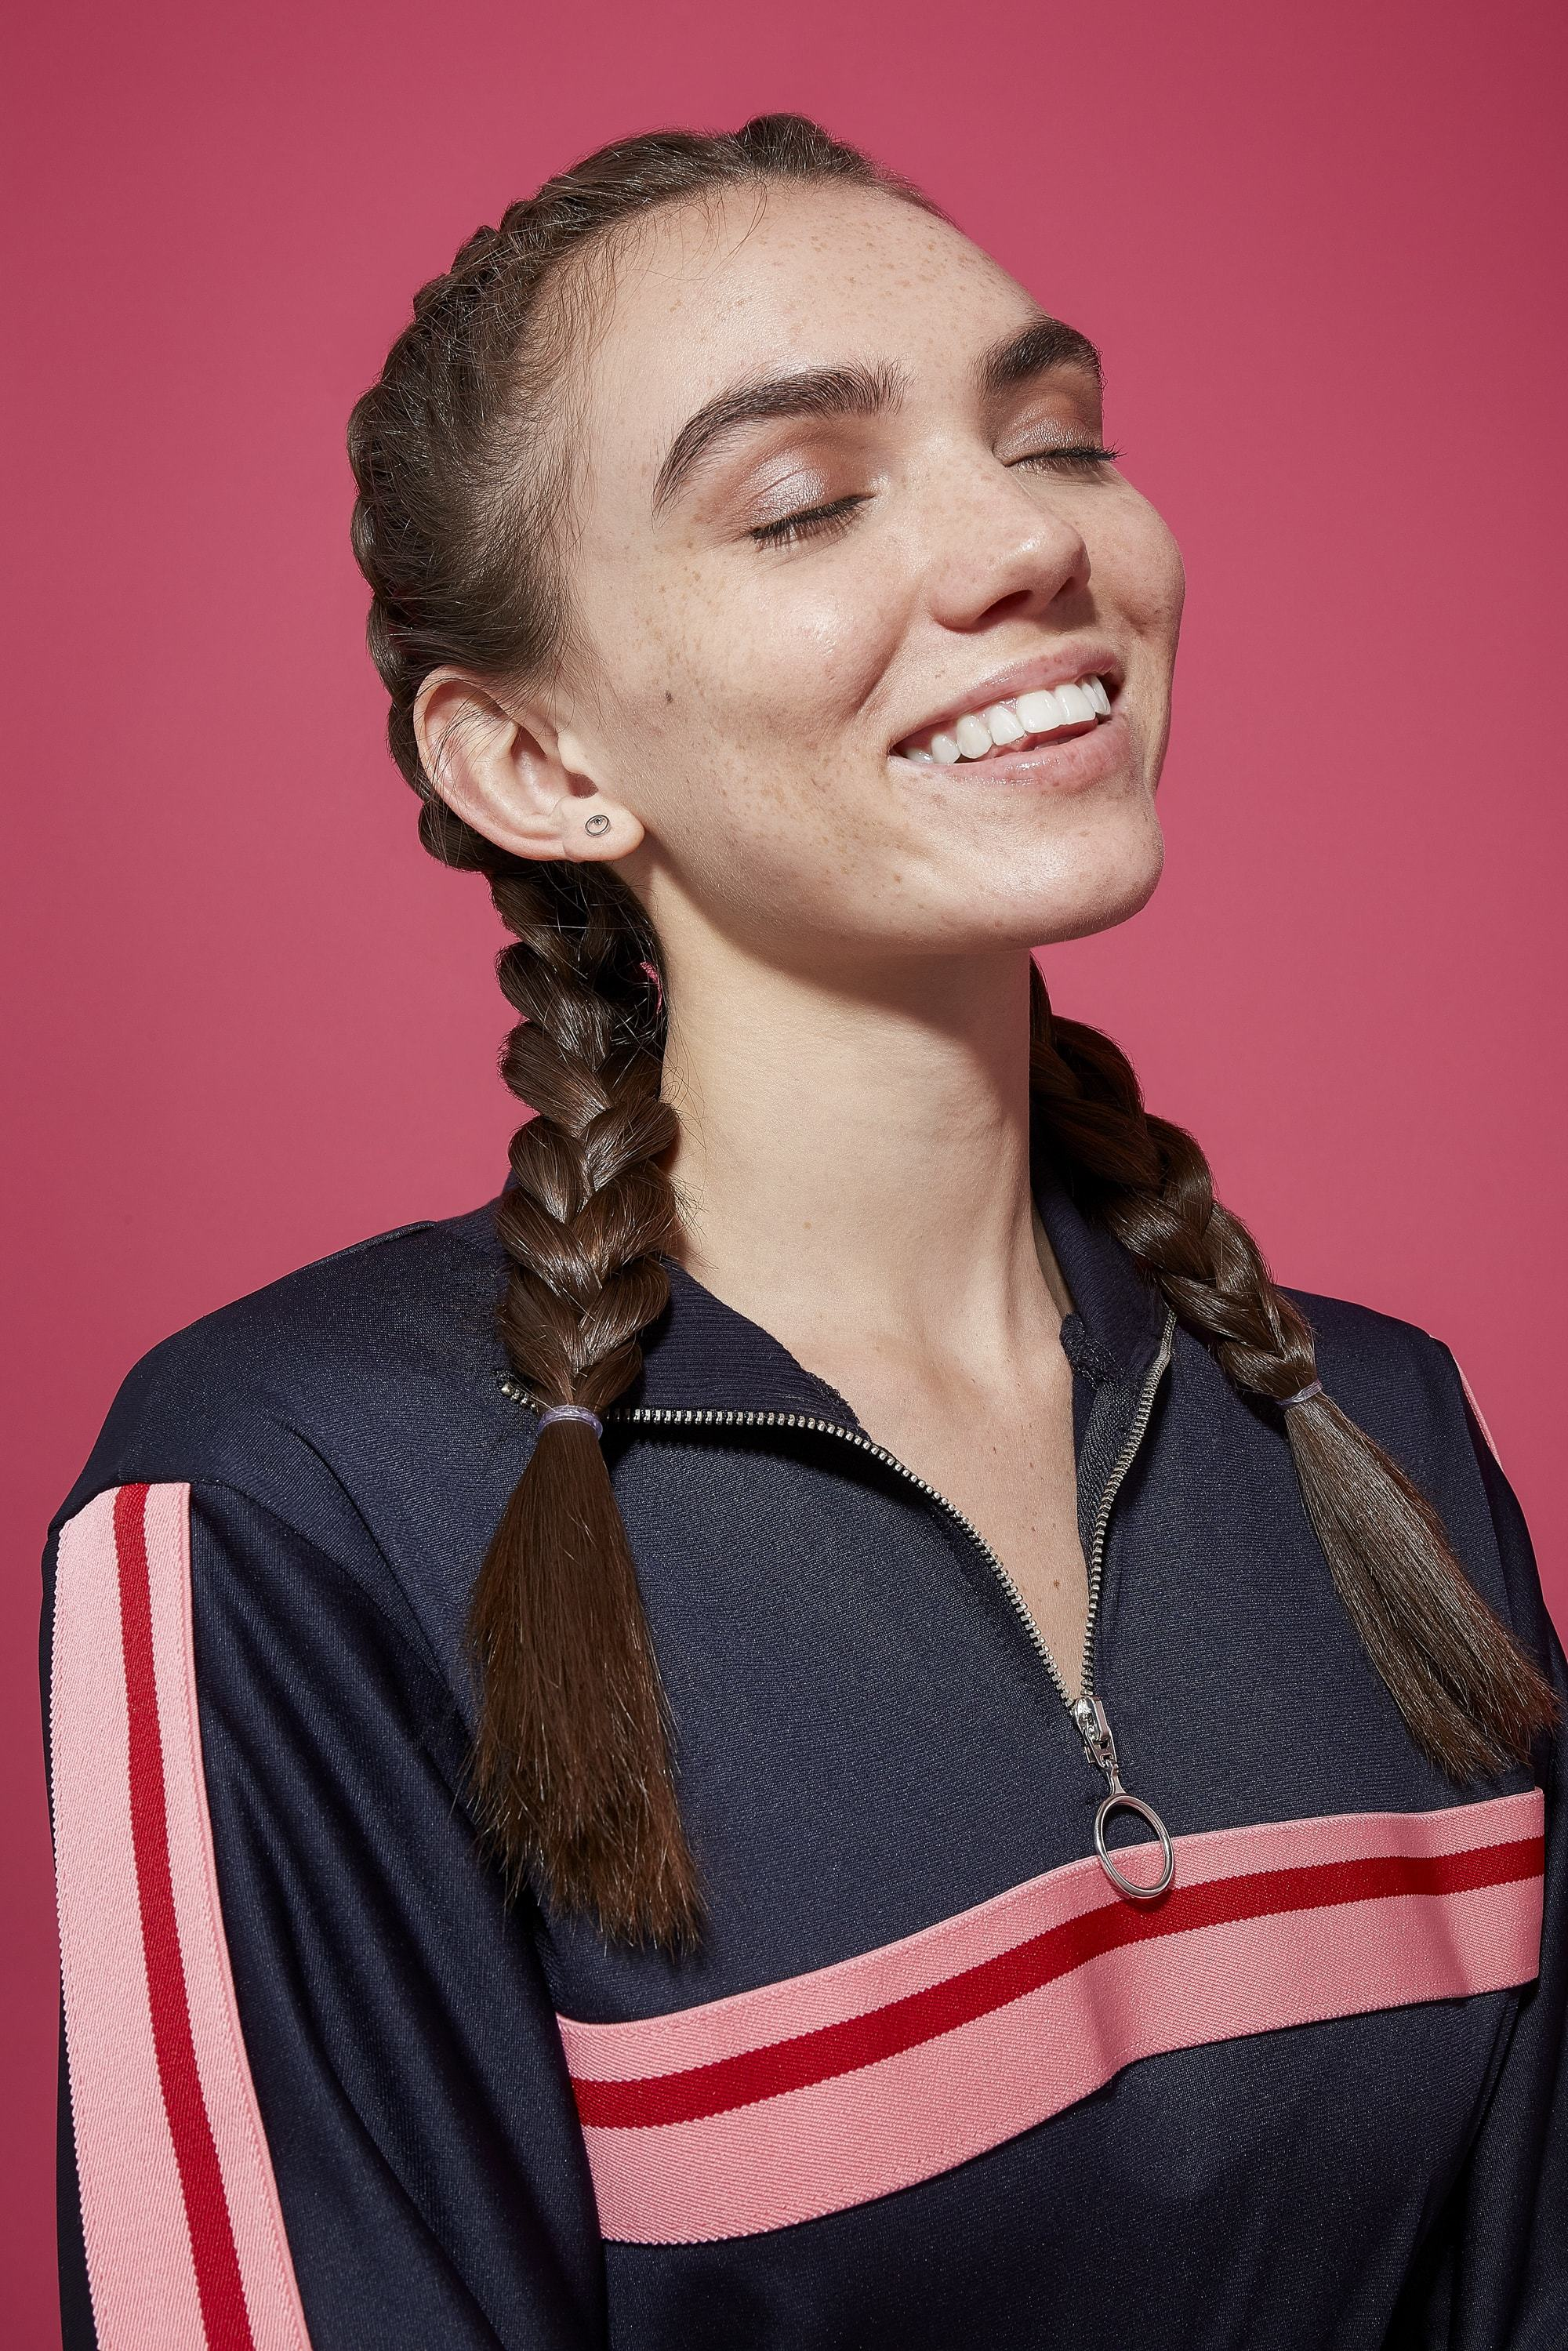 hair updos: brunette model with long hair styled in boxer braids in studio with dark pink background wearing sports top